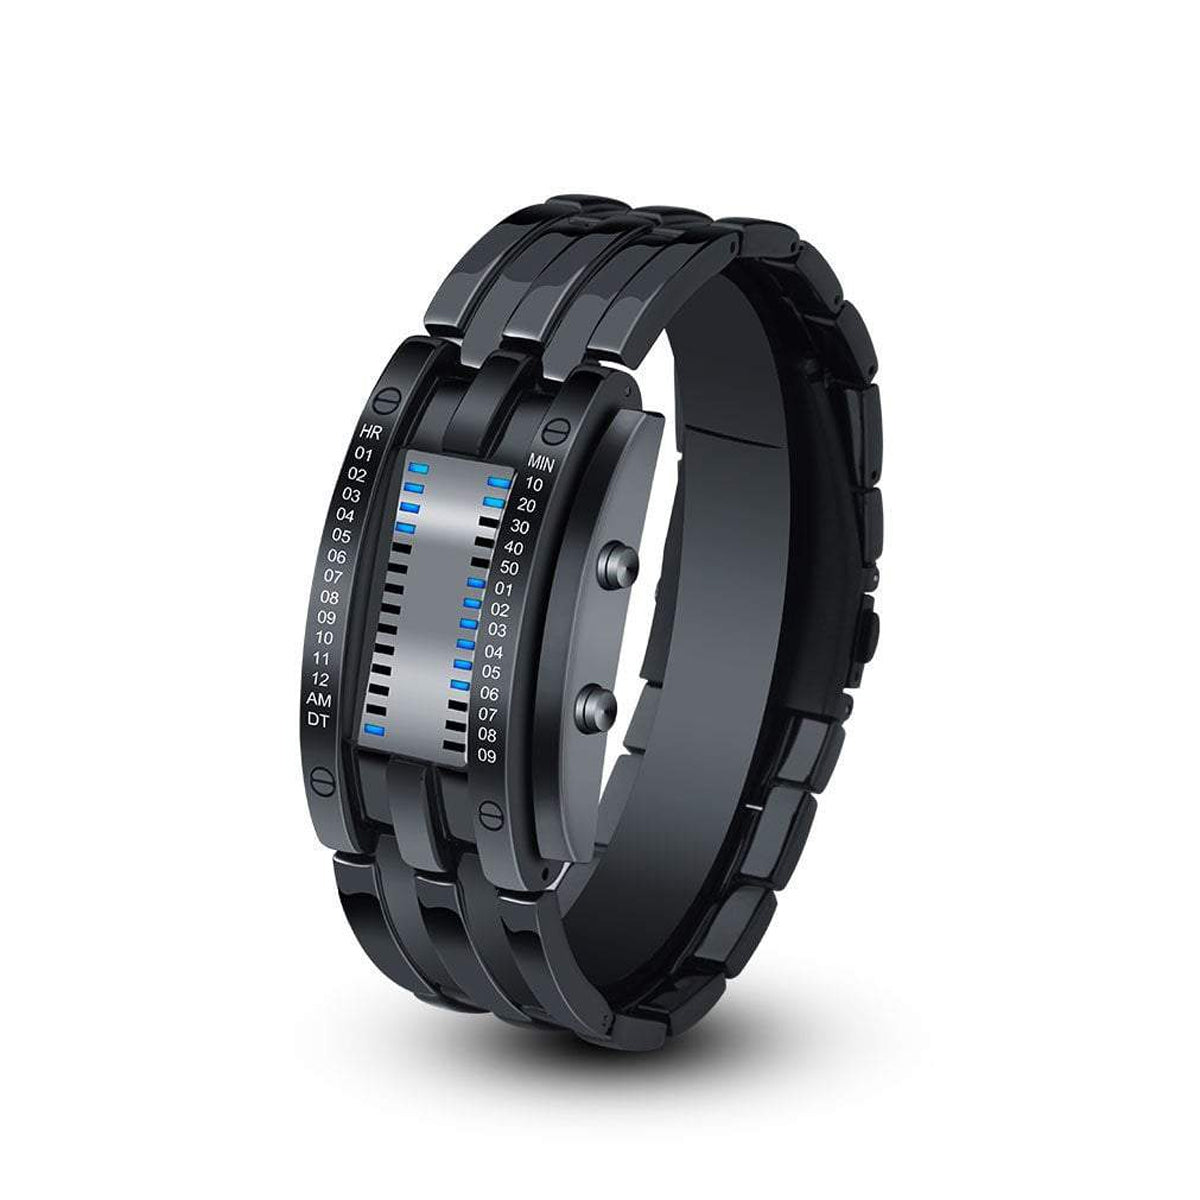 Japanese Quartz Digital Futuristic Wrist Watch with a Double Open Steel Buckle